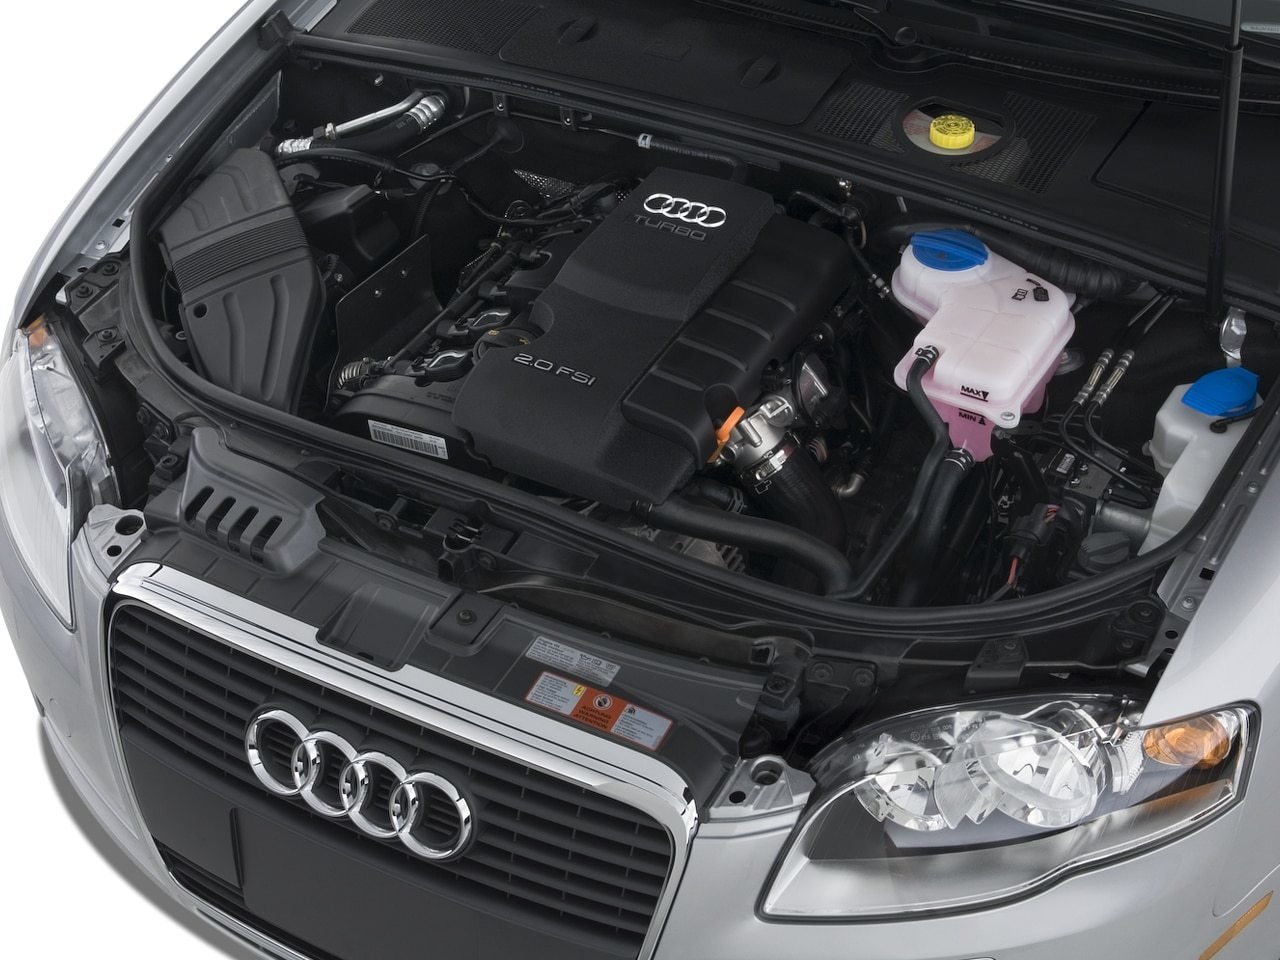 Latest 2009 Audi A4 Reviews Research A4 Prices Specs Motortrend Free Download